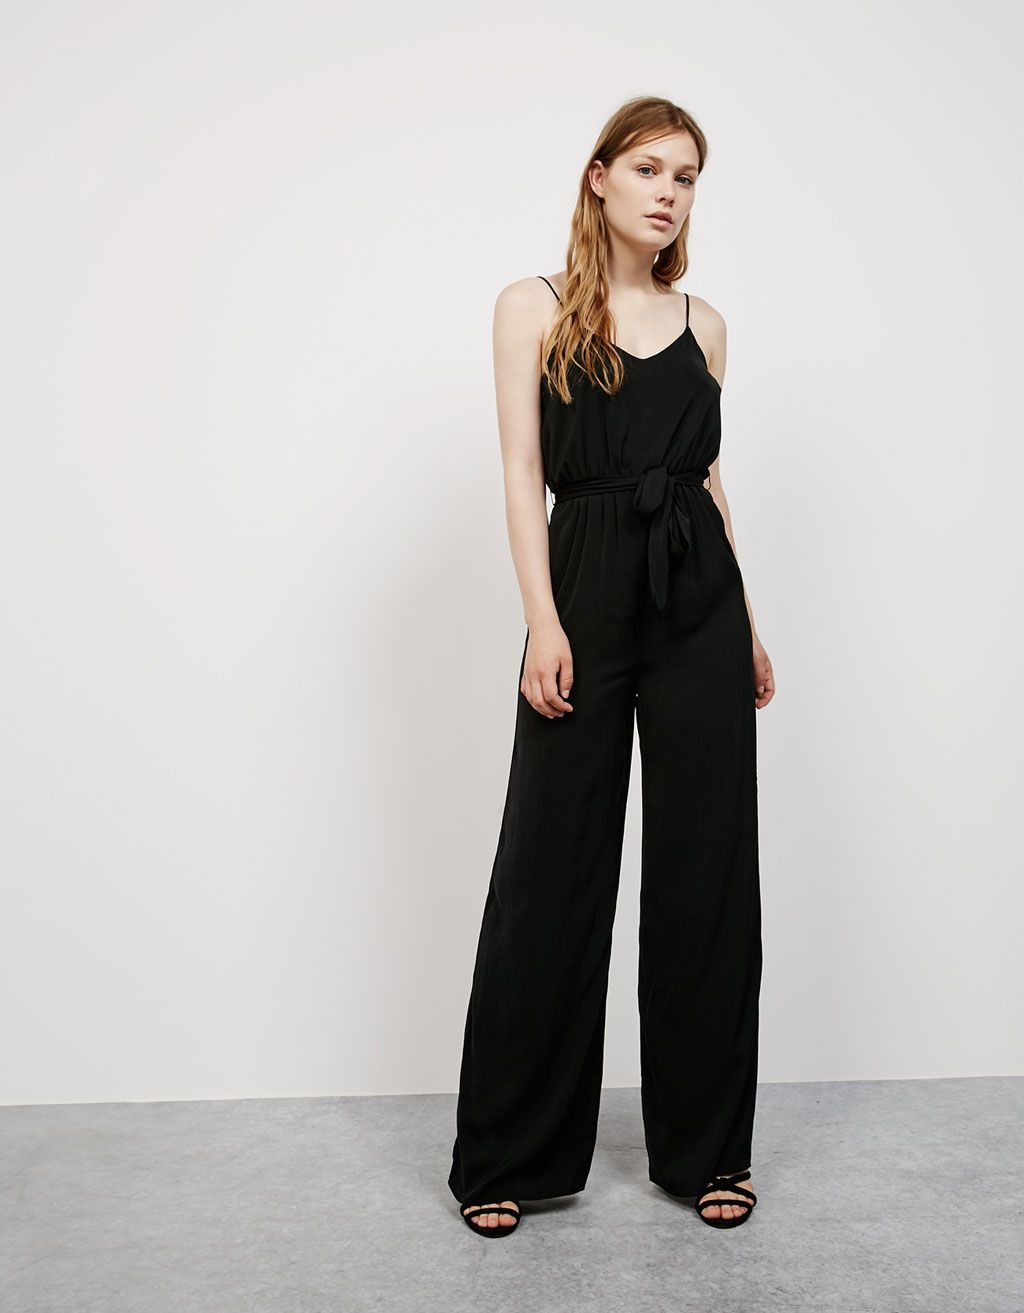 access denied | tuch, overall, outfit